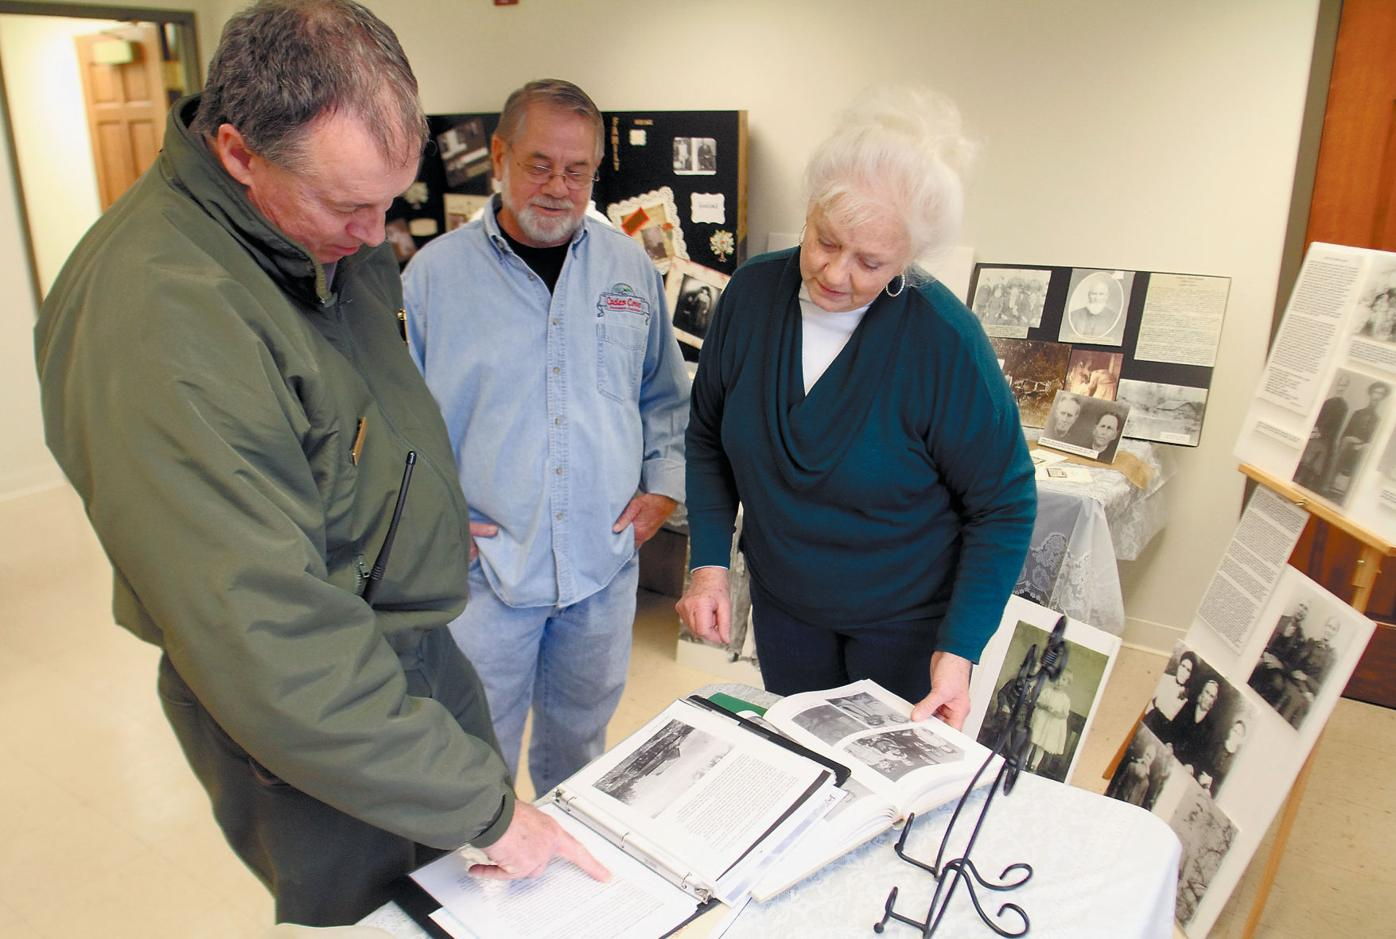 Appalachian history, culture featured at Snowdown